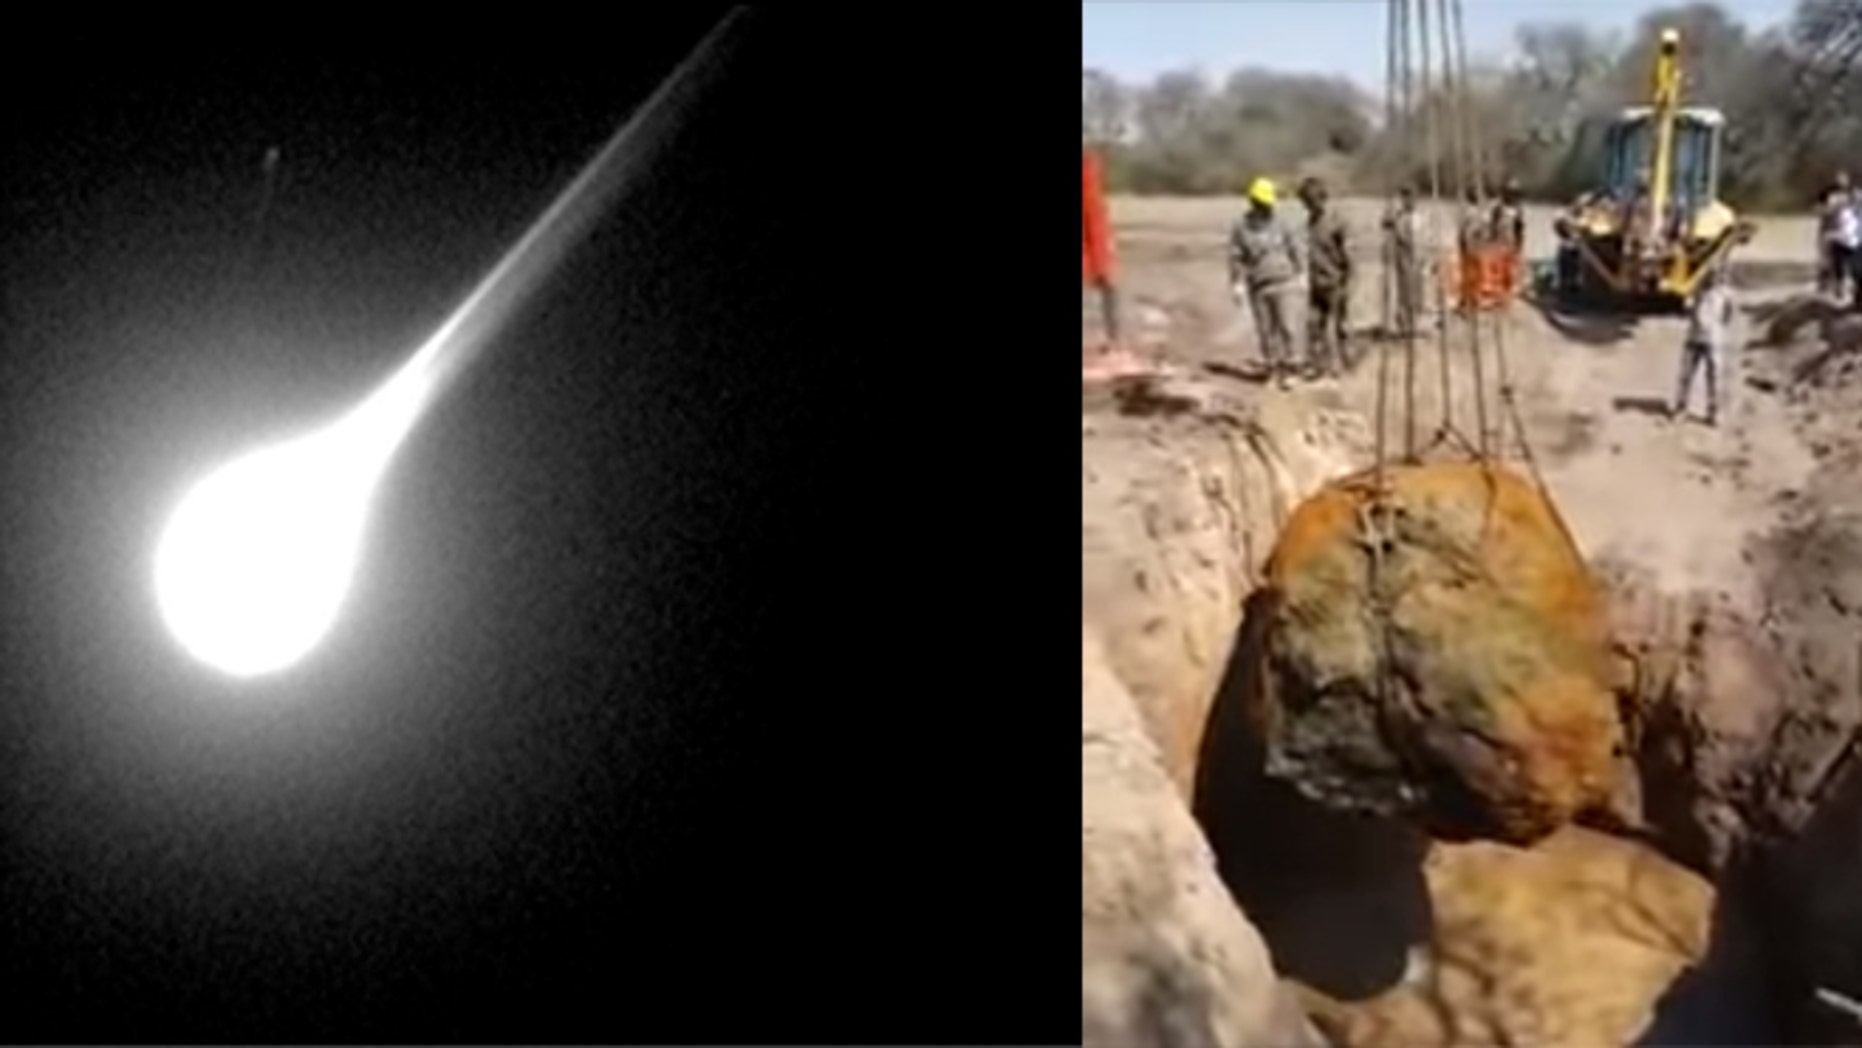 A meteorite entering the Earth's atmosphere (left), and the Gancedo meteorite found in Argentina. (Images: Left, photo by George Varros and Dr. Peter Jenniskens/NASA/Getty Images; right, screen grab from video released by Argentine government.)